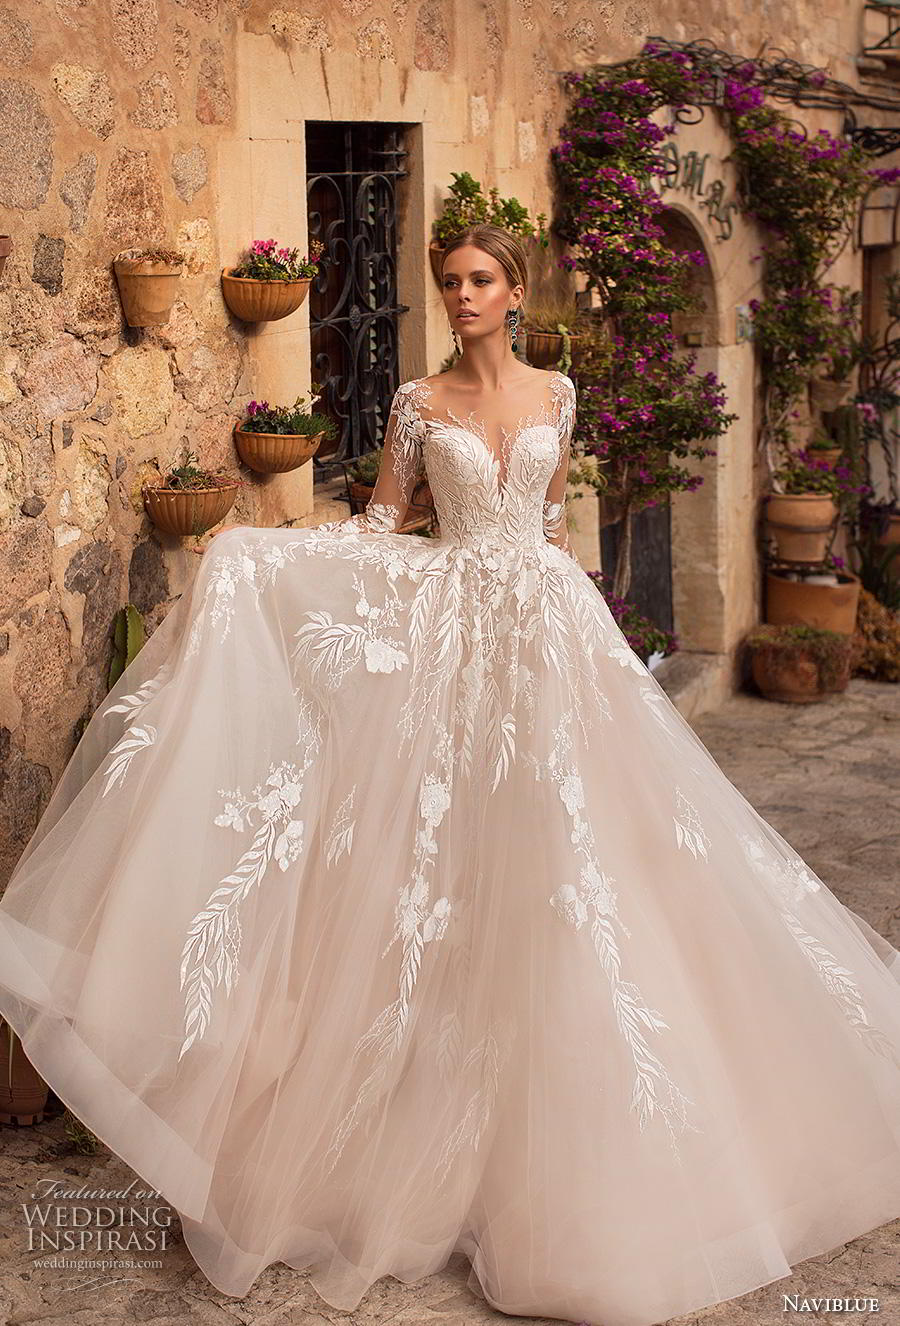 naviblue 2019 bridal long sleeves deep sweetheart neckline heavily embellished bodice romantic glamorous blush a  line wedding dress sheer button back chapel train (13) mv